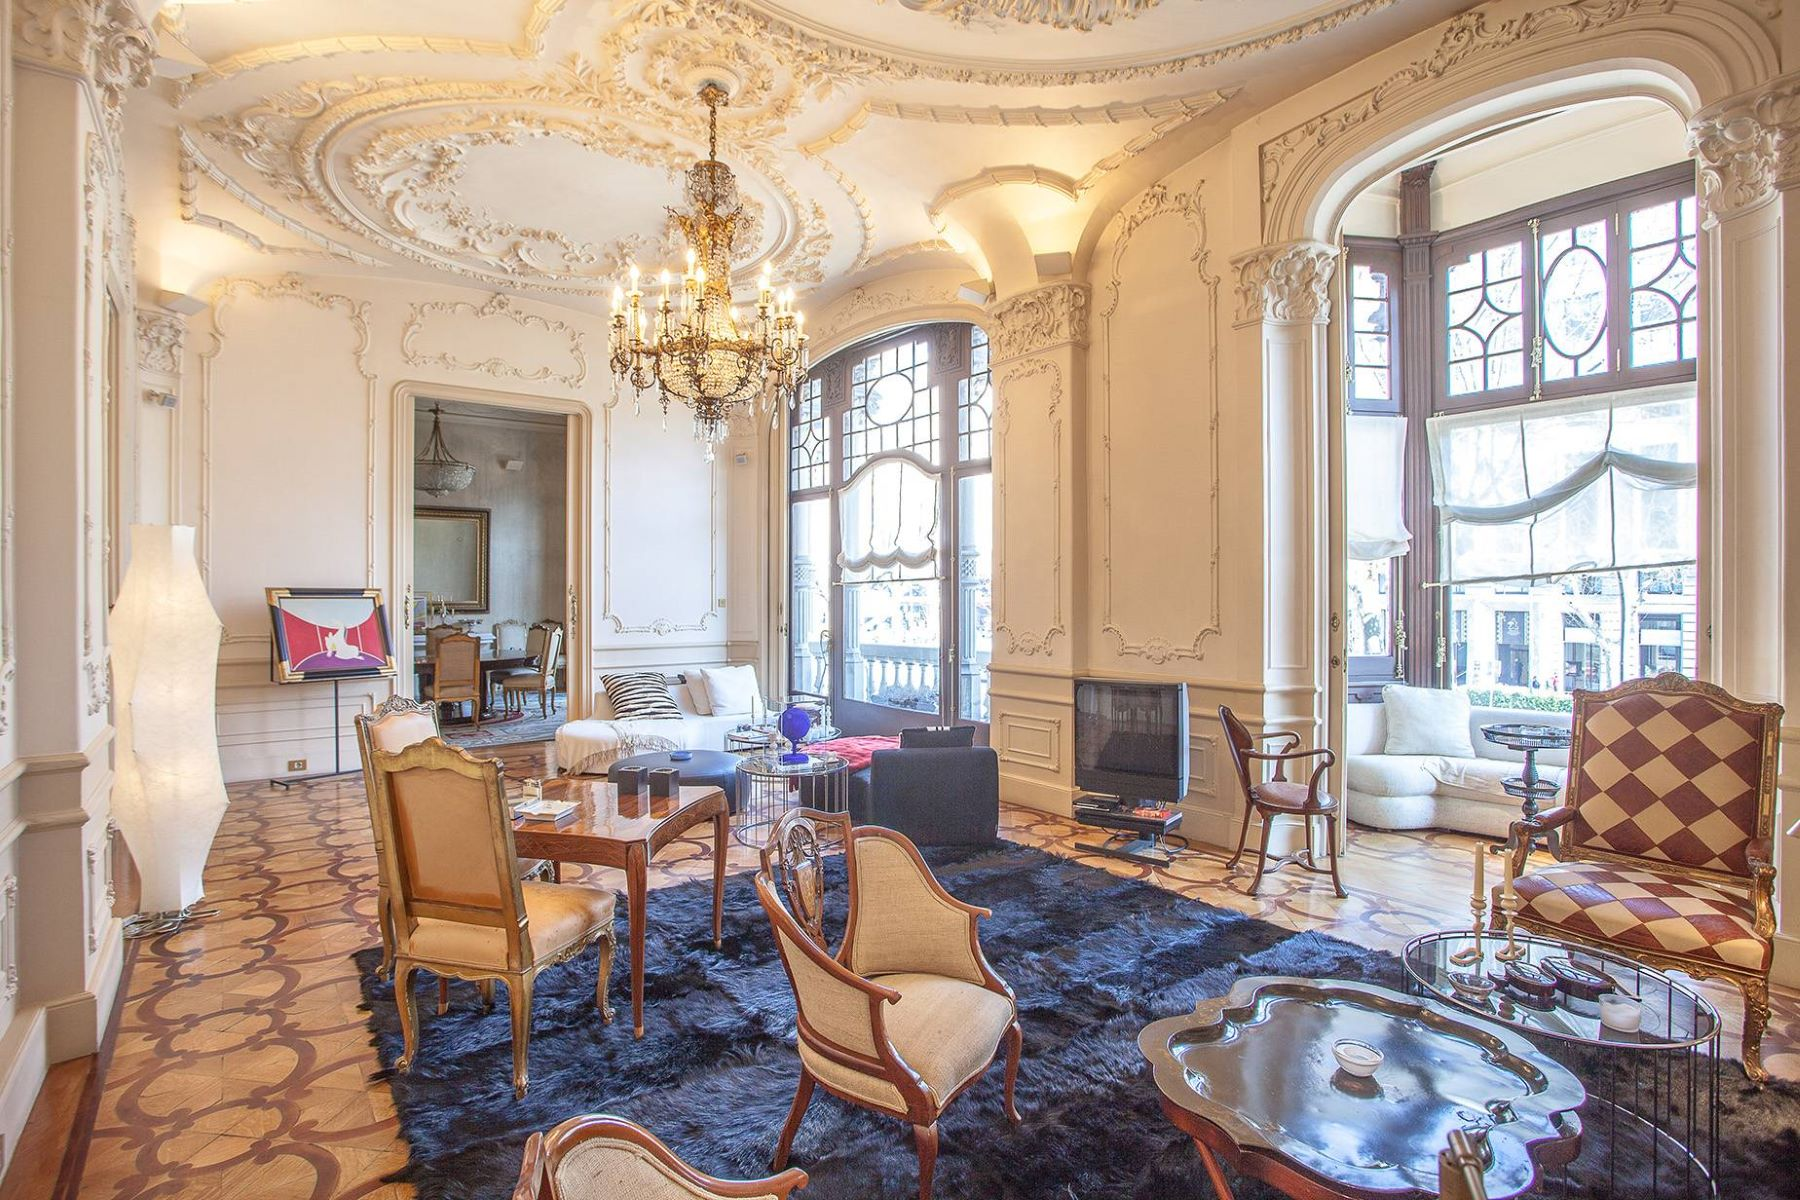 Apartment for Sale at Ornate and Opulent Palace on the Exclusive Paseo de Gracia Barcelona City, Barcelona 08007 Spain